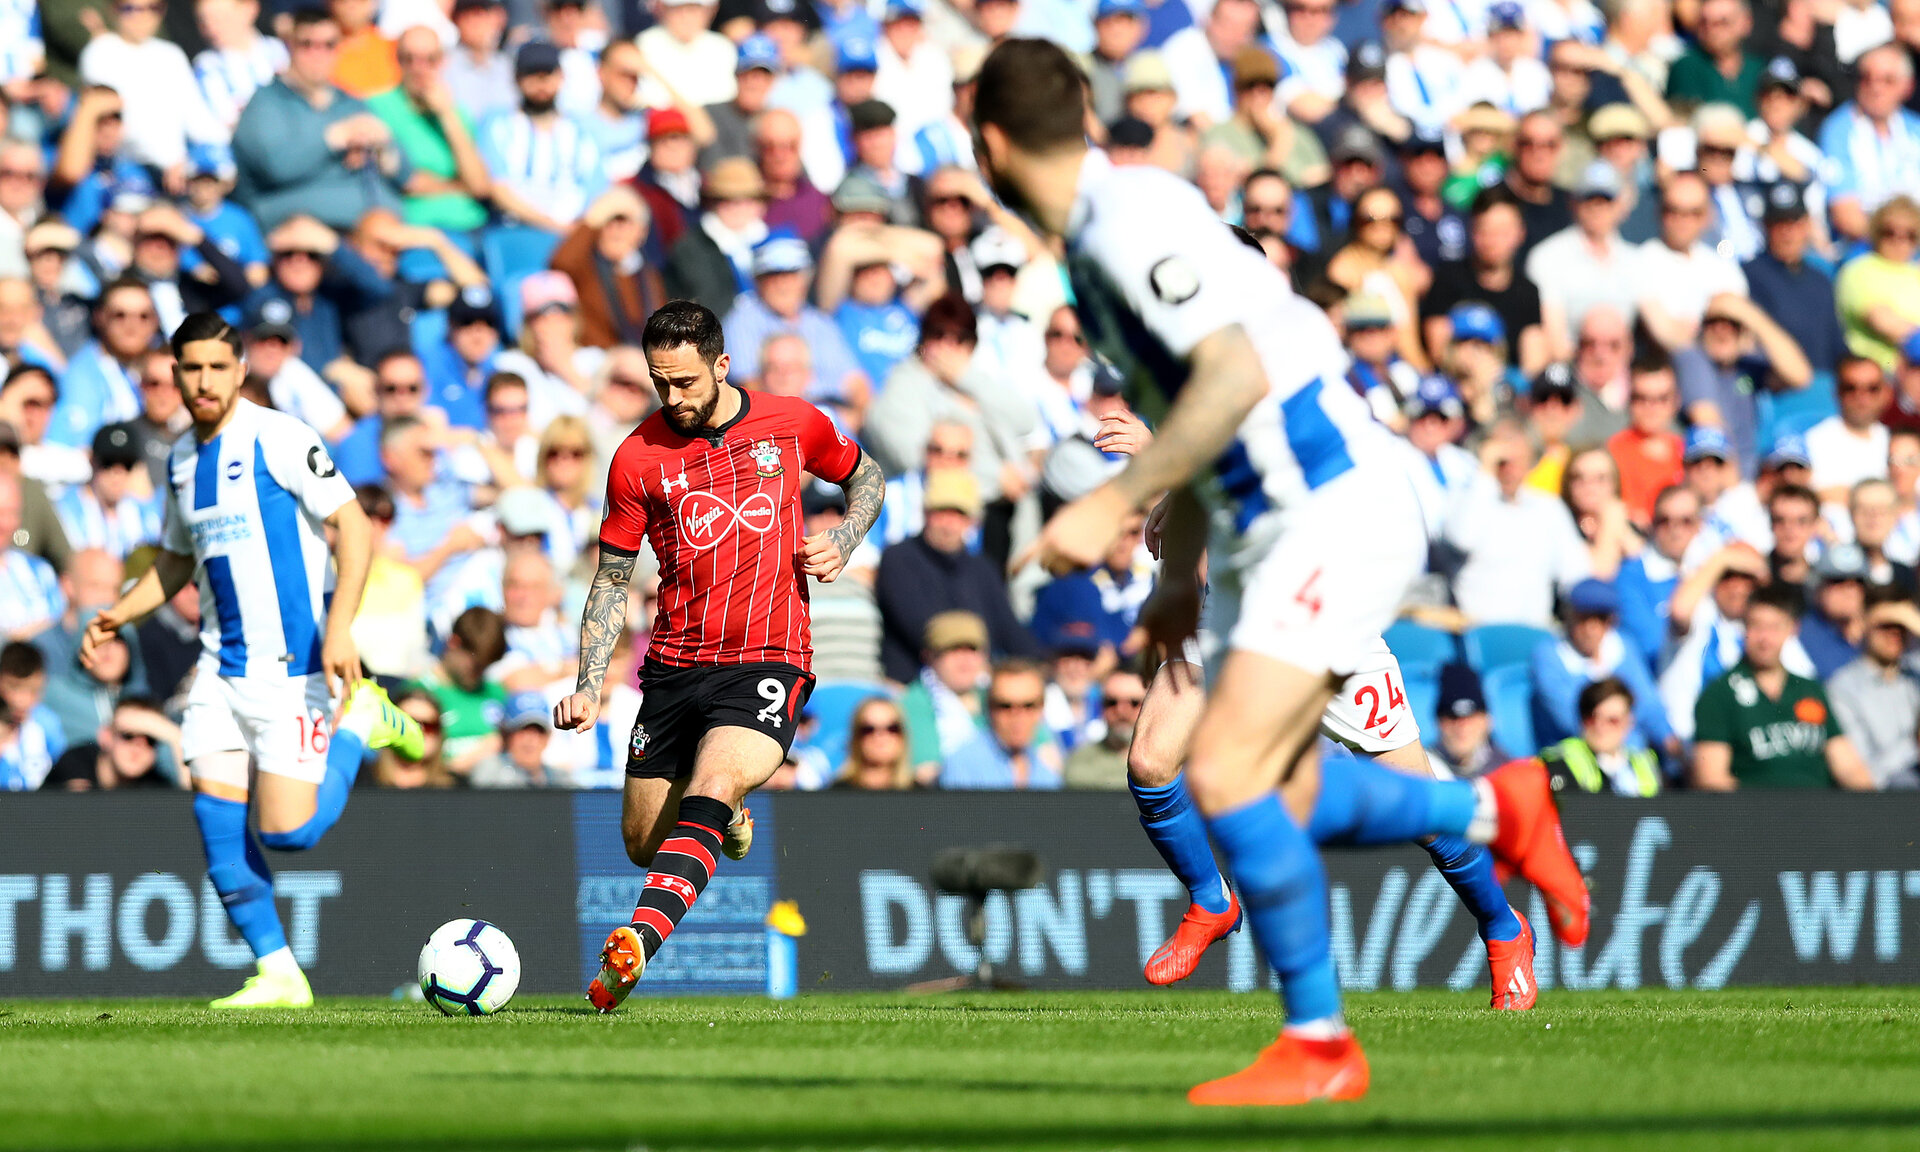 BRIGHTON, ENGLAND - MARCH 30: Danny Ings of Southampton during the Premier League match between Brighton & Hove Albion and Southampton FC at American Express Community Stadium on March 30, 2019 in Brighton, United Kingdom. (Photo by Matt Watson/Southampton FC via Getty Images)